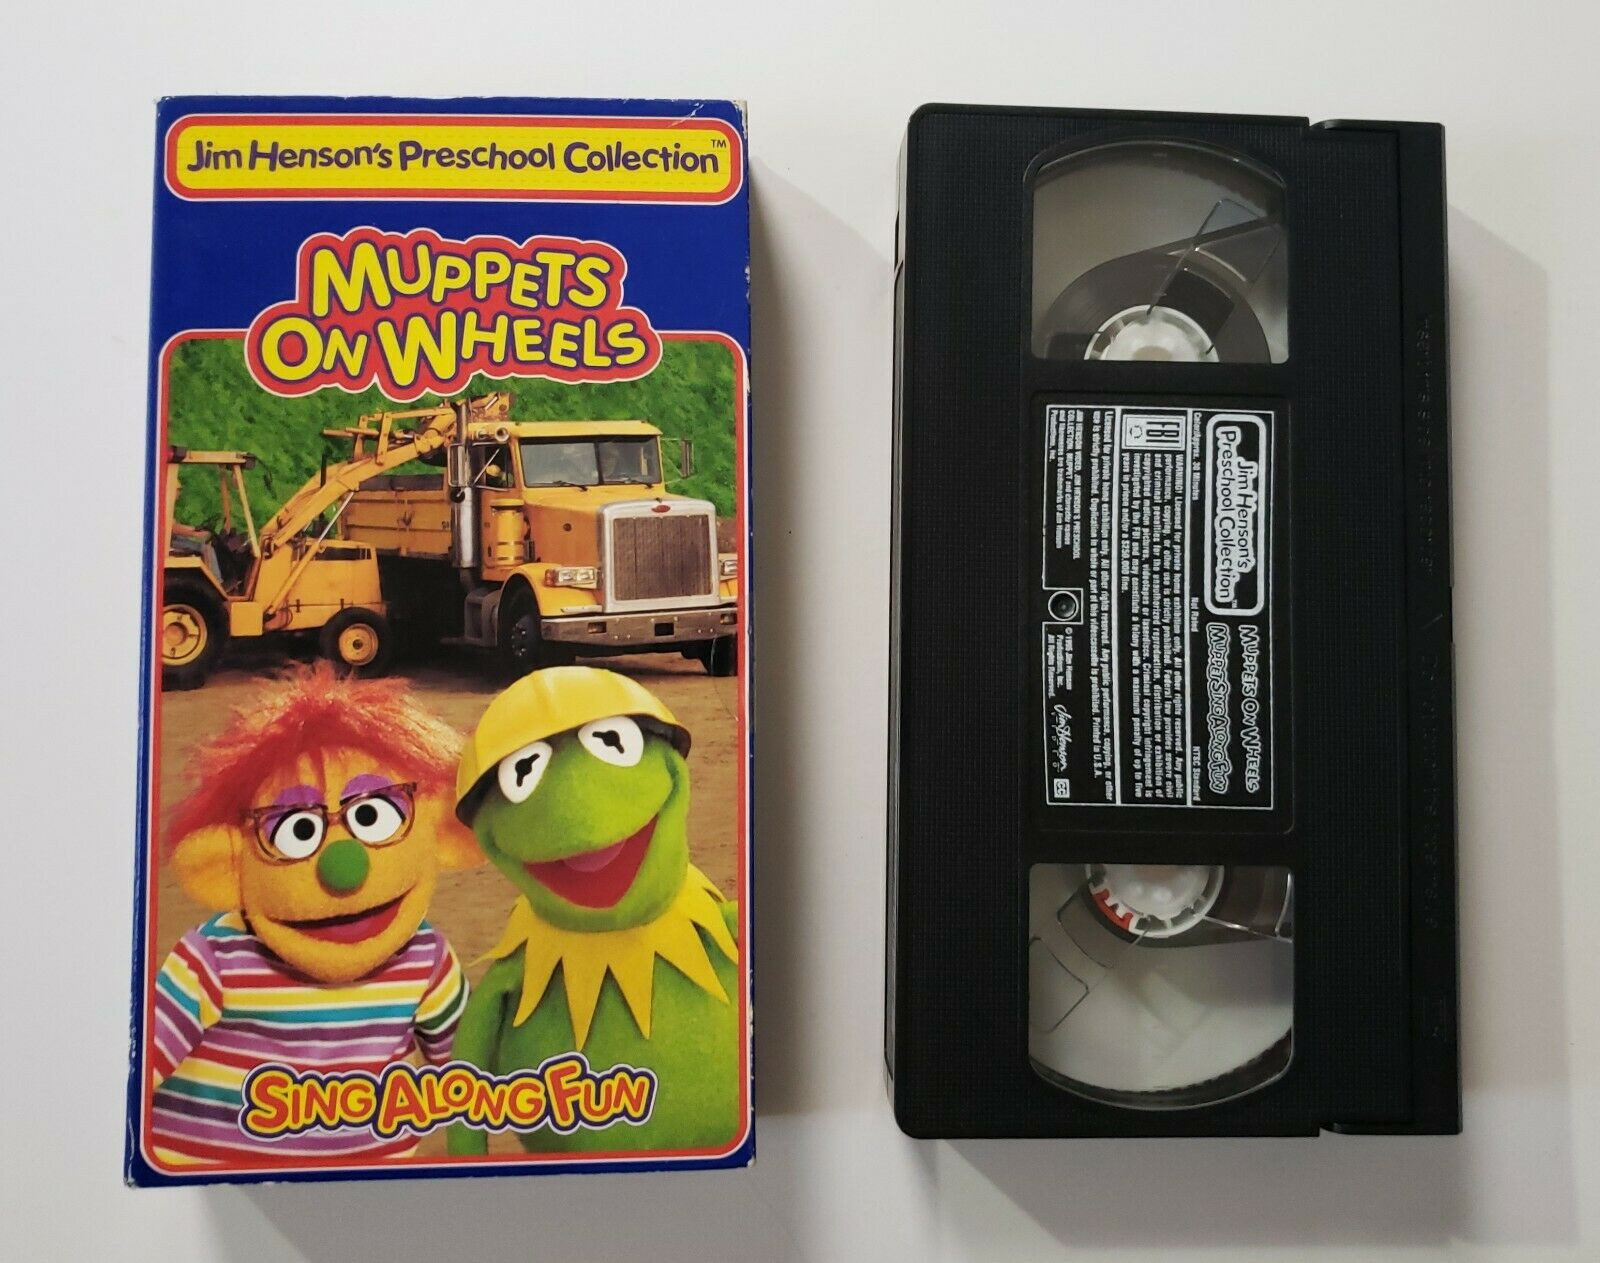 Muppets on Wheels (1995 VHS)